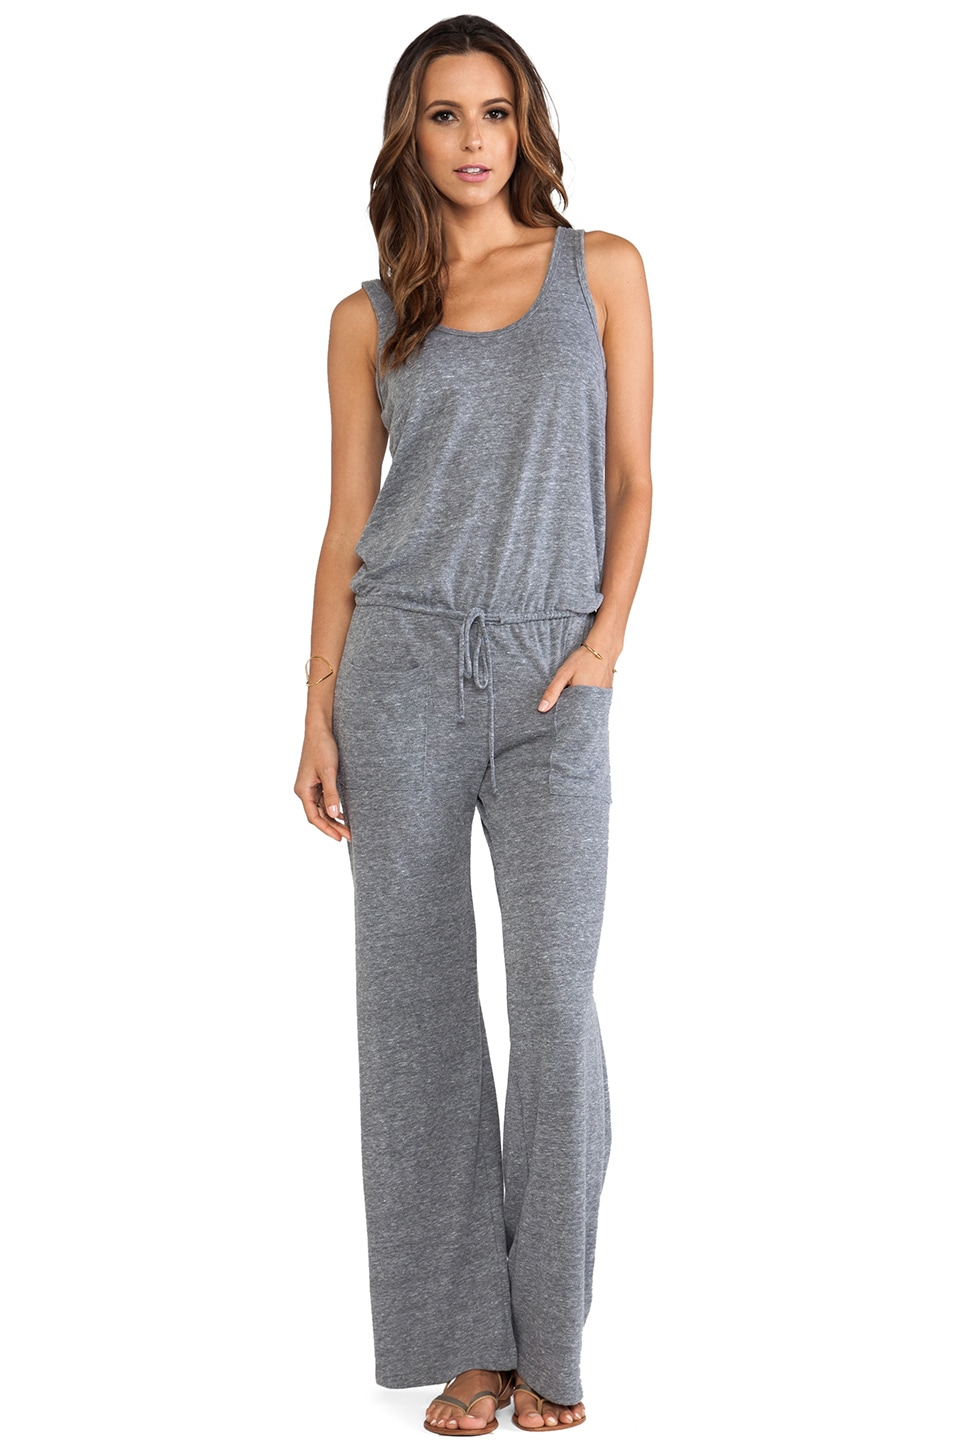 C&C California Jumpsuit in Heather Grey